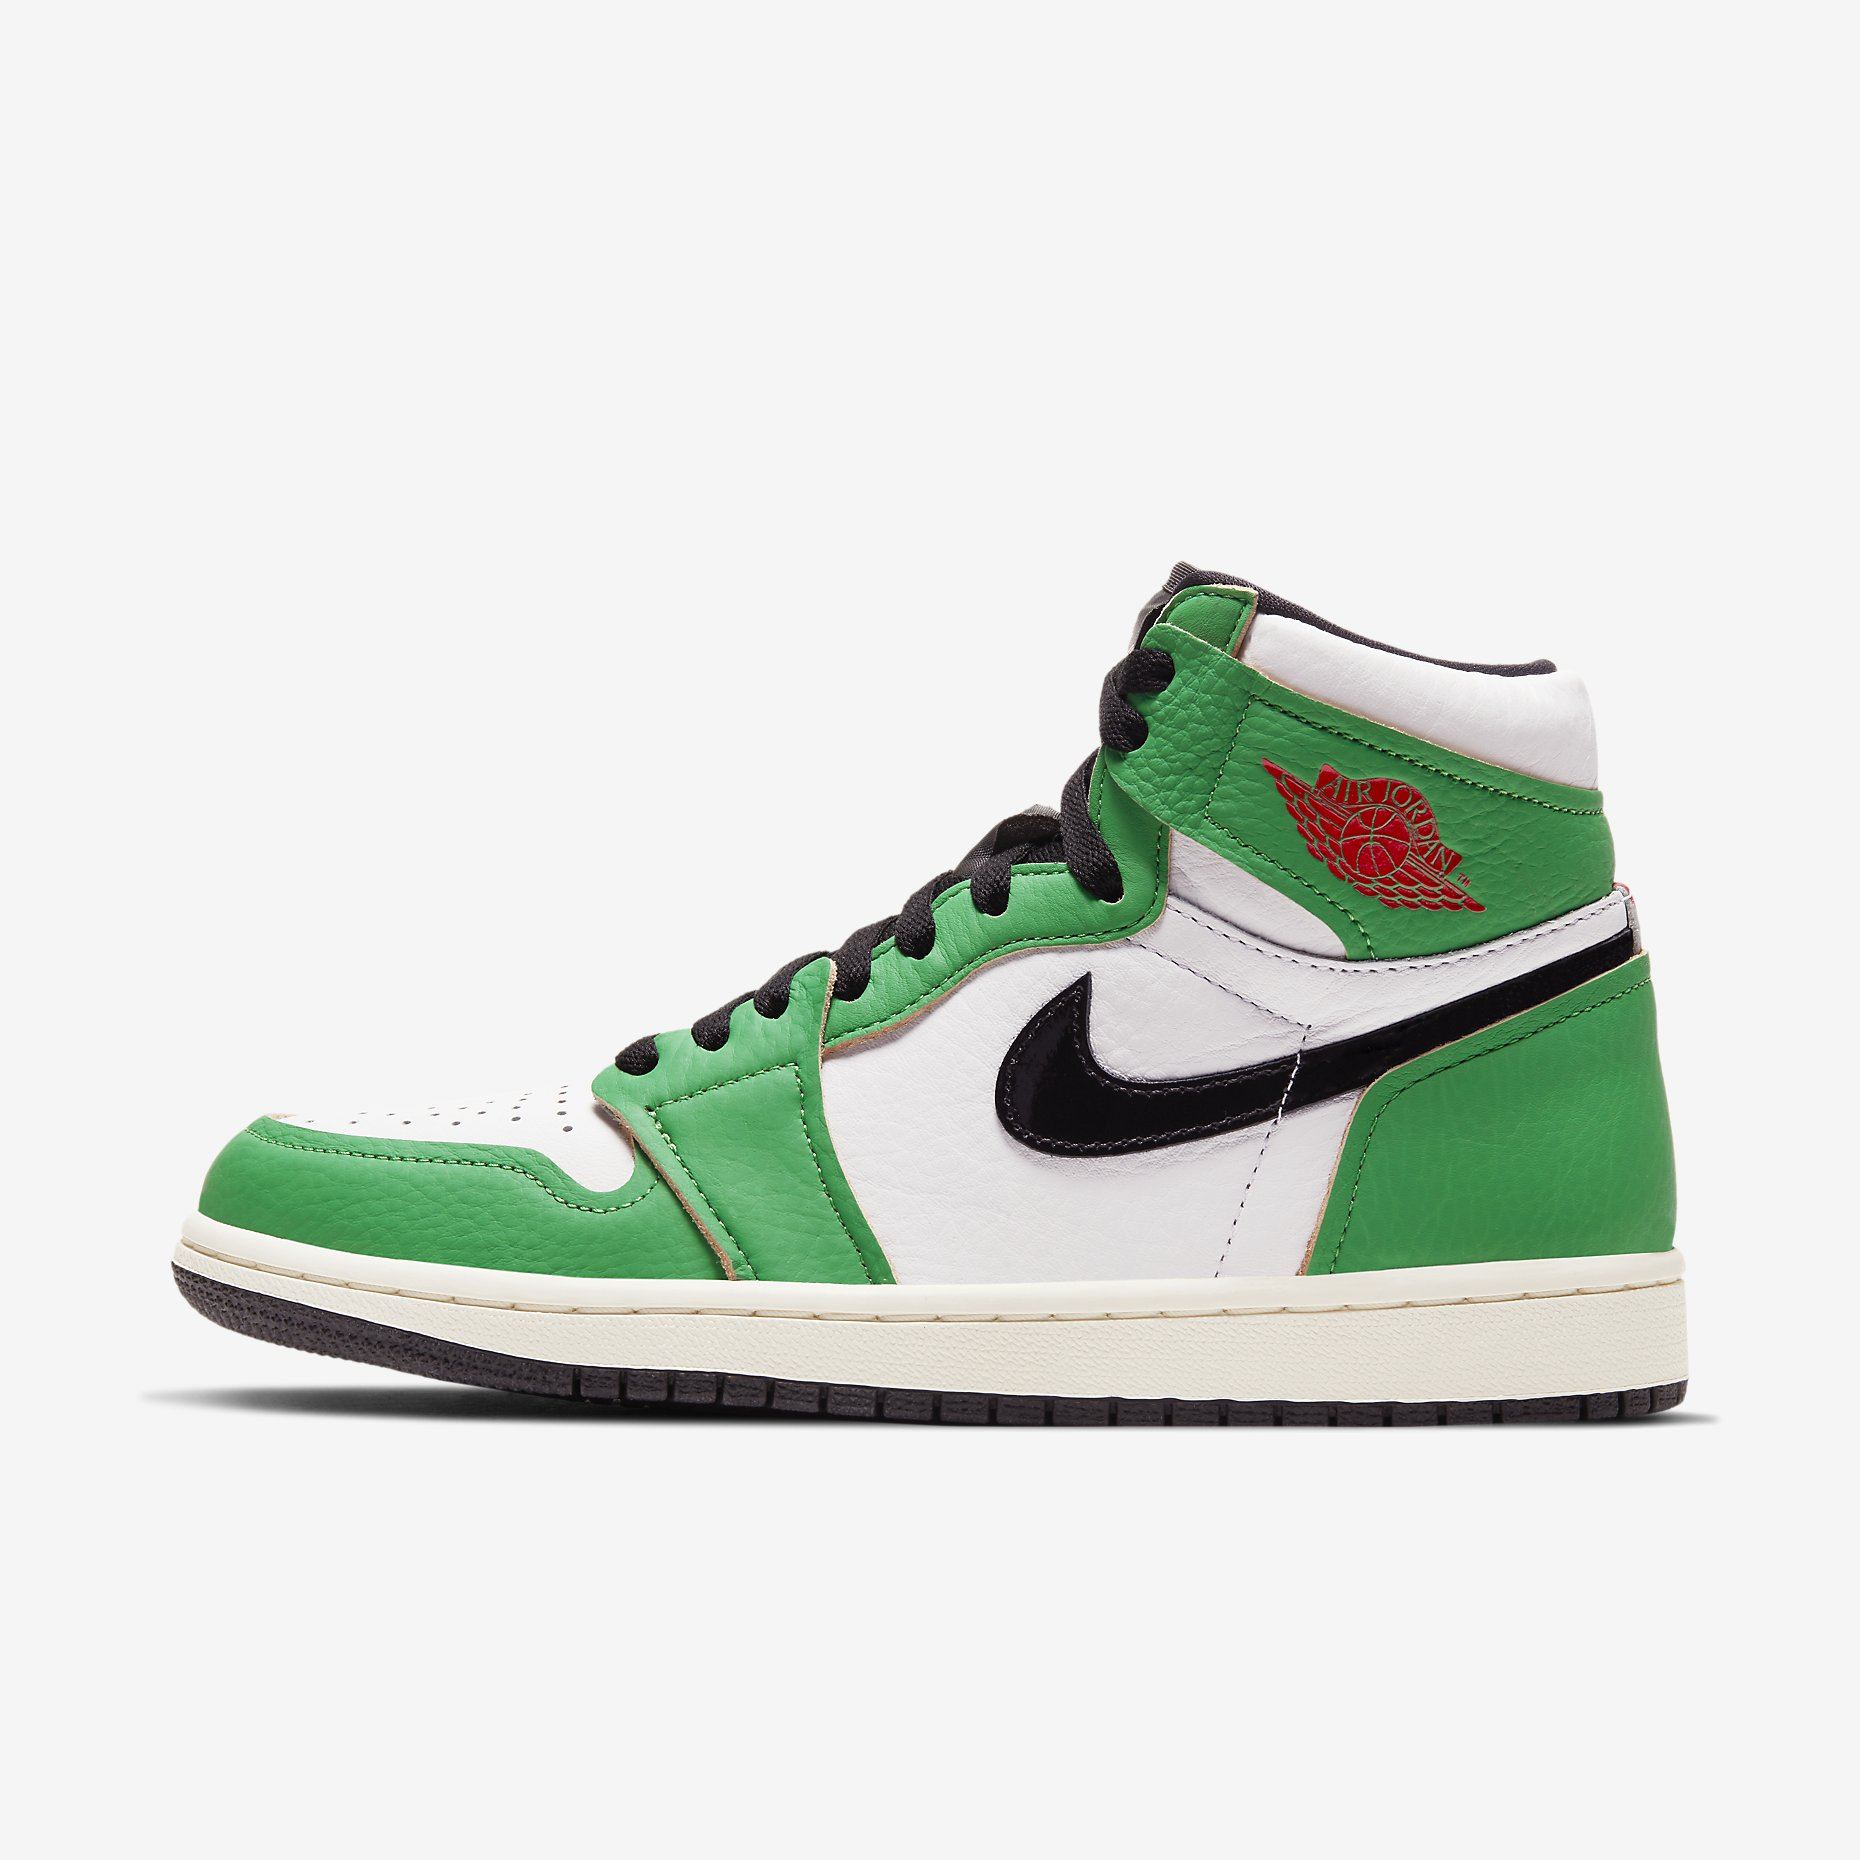 Wmns Jordan 1 Retro High 'Lucky Green'}